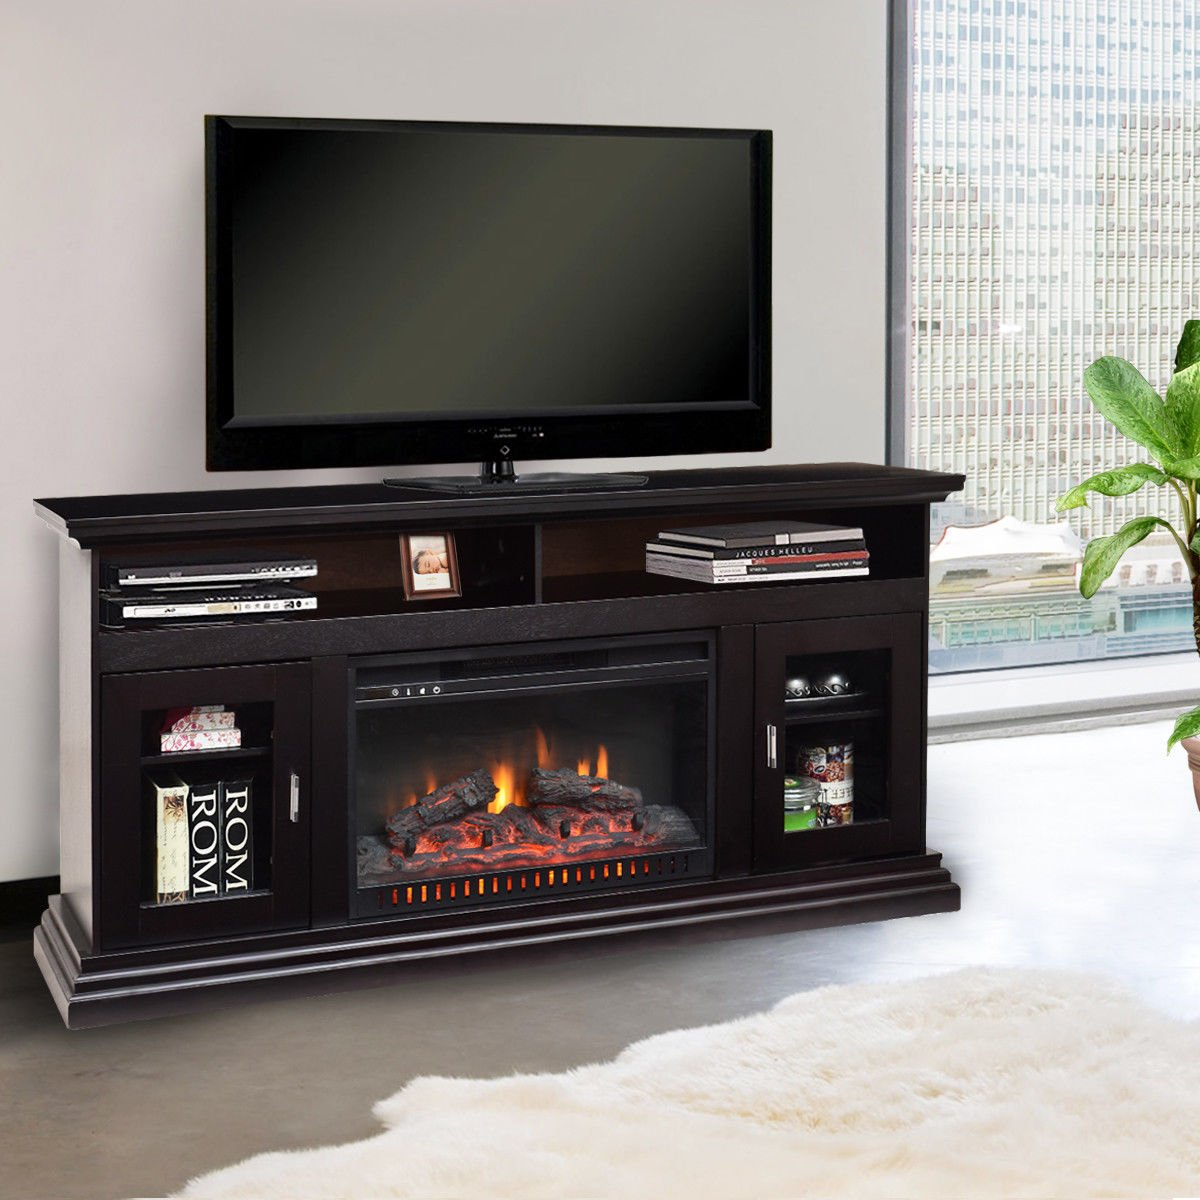 62'' Fireplace TV Stand Console Storeage Electric Heater Home Furniture